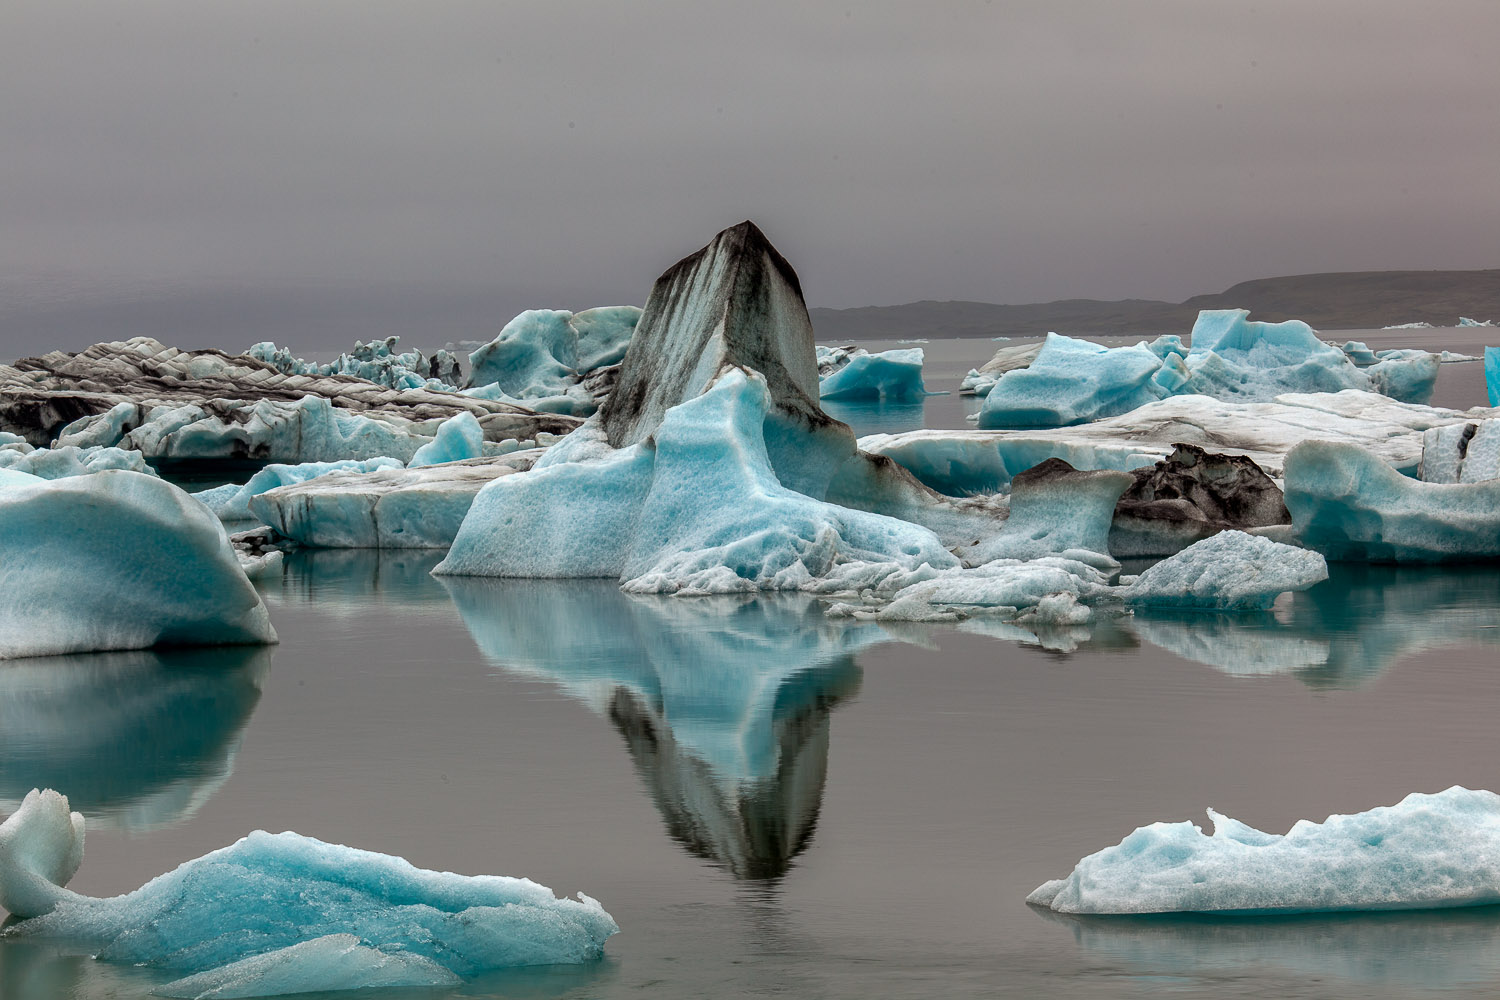 Large icebergs create stunning formations and a beautiful reflection on the    Jokulsarlon Glacier Lagoon in Iceland   .